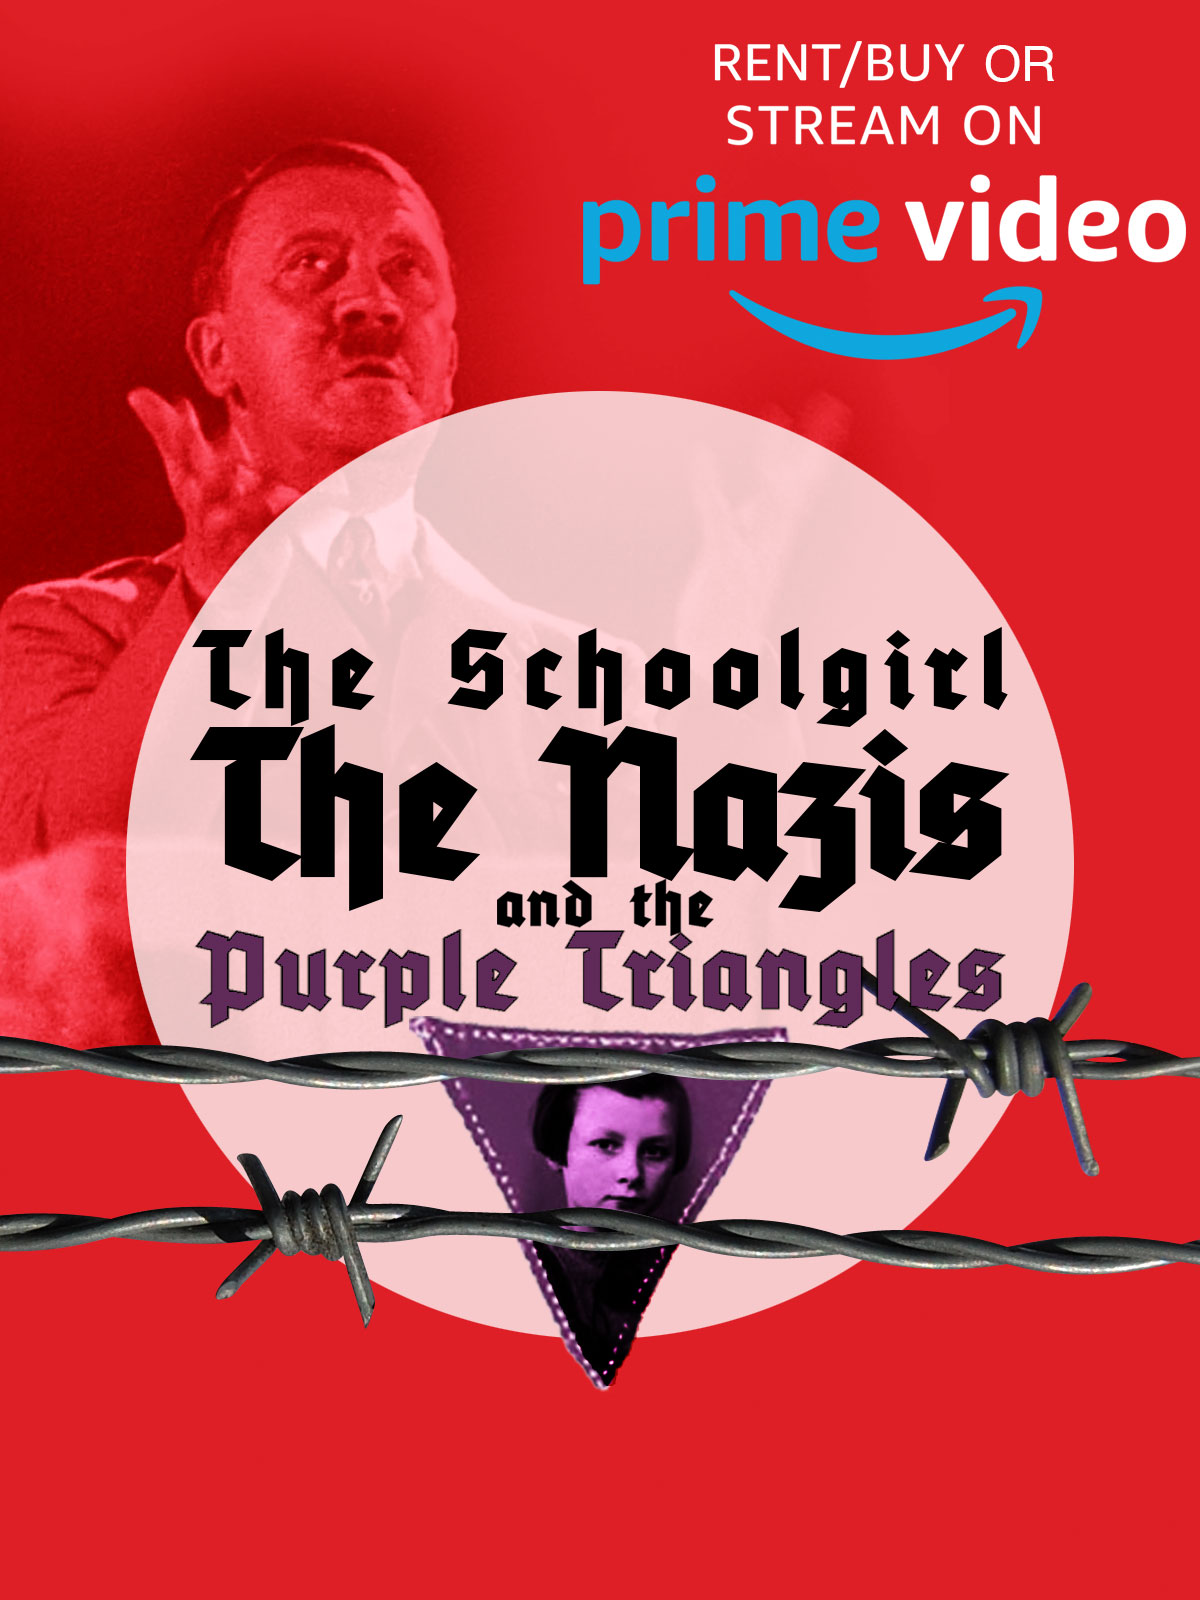 The Schoolgirl The Nazis and The Purple Triangles - Watch on Amazon Prime Video